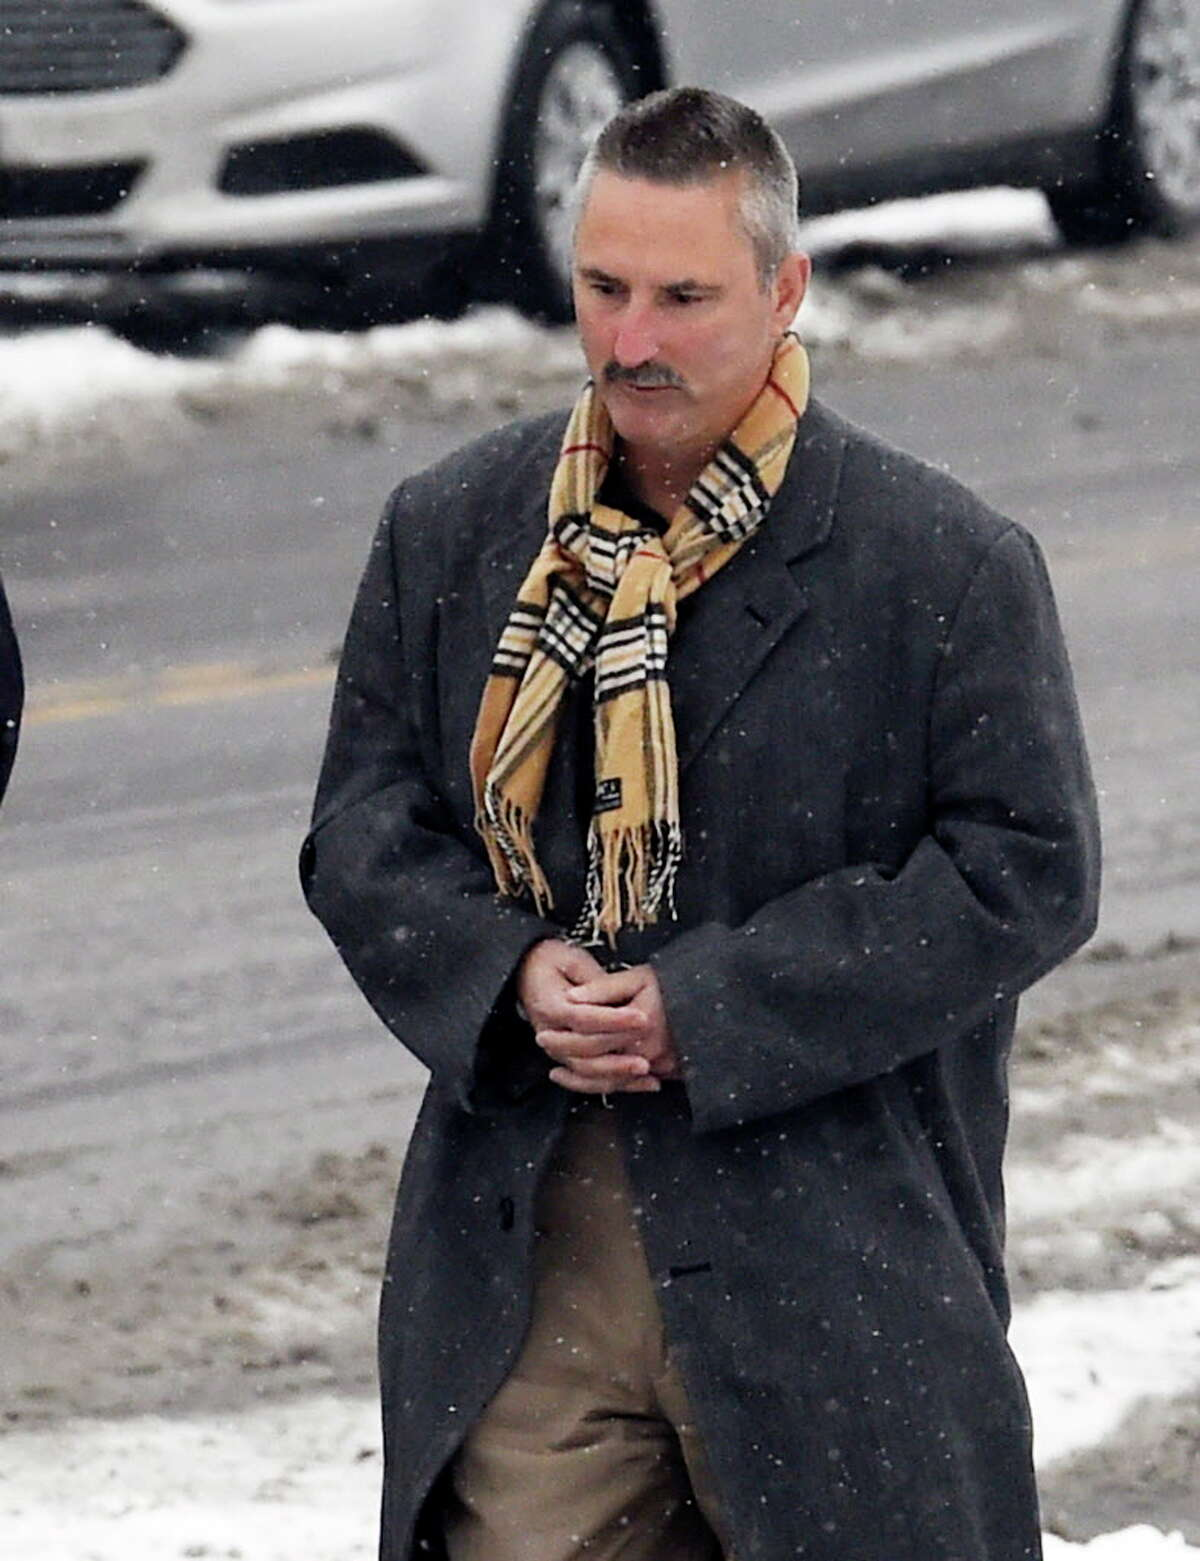 James A. Ferro arrives at the Albany City Court Monday afternoon Jan. 12, 2015, in Albany, N.Y. (Skip Dickstein/Times Union)